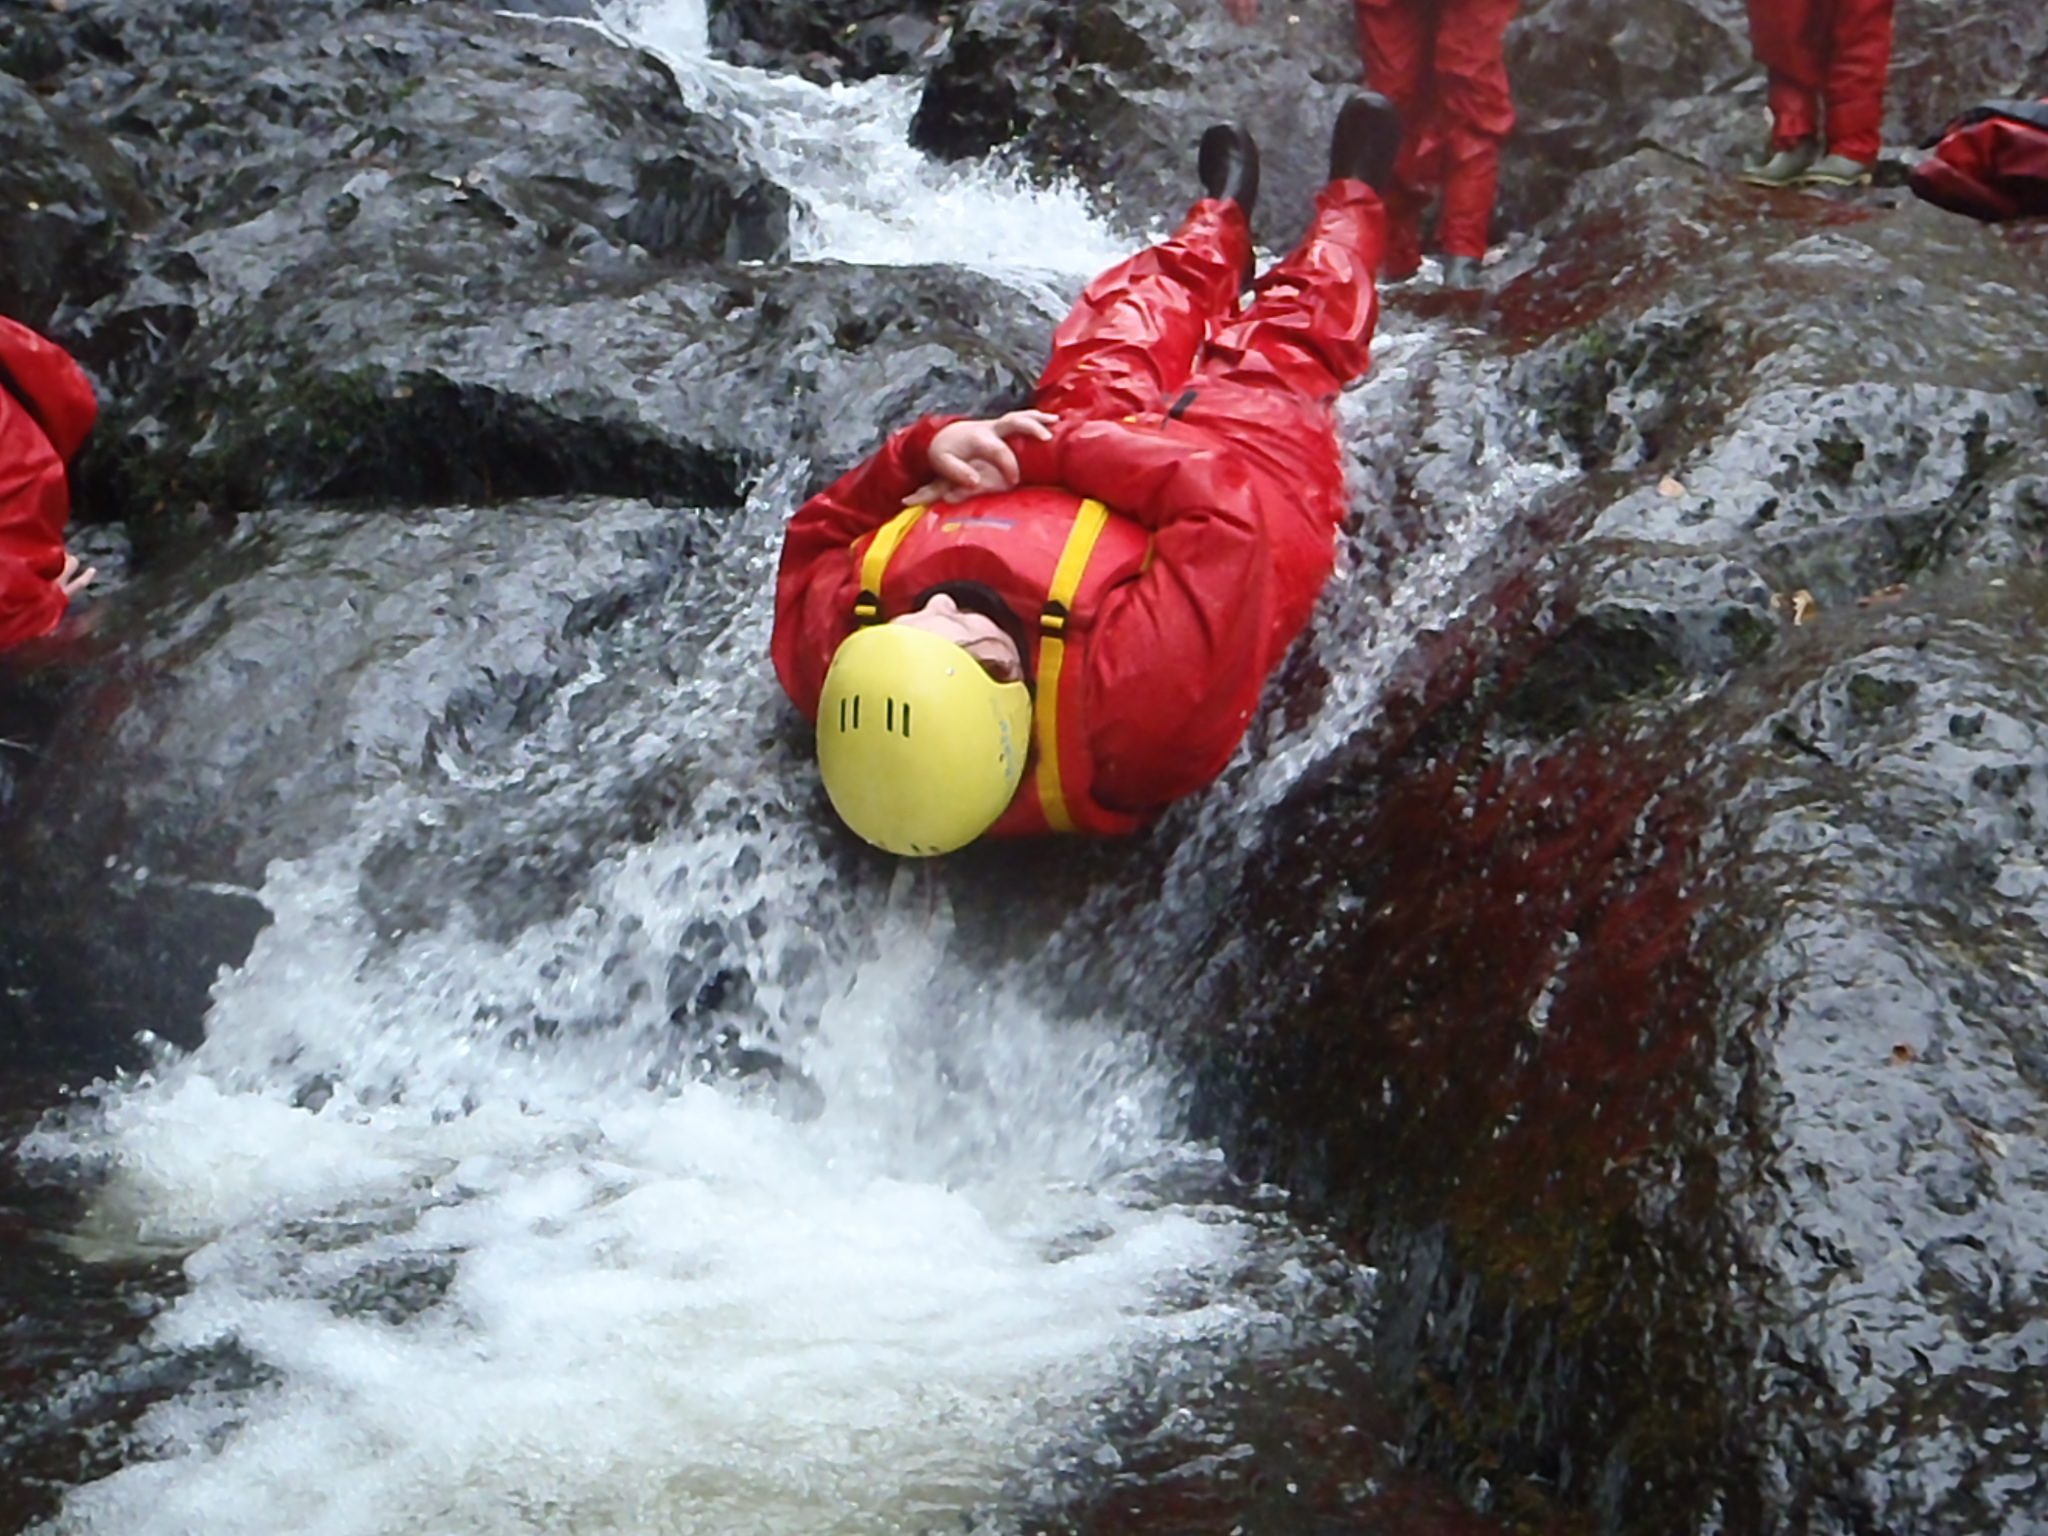 Dropping into a pool while gorge scrambling